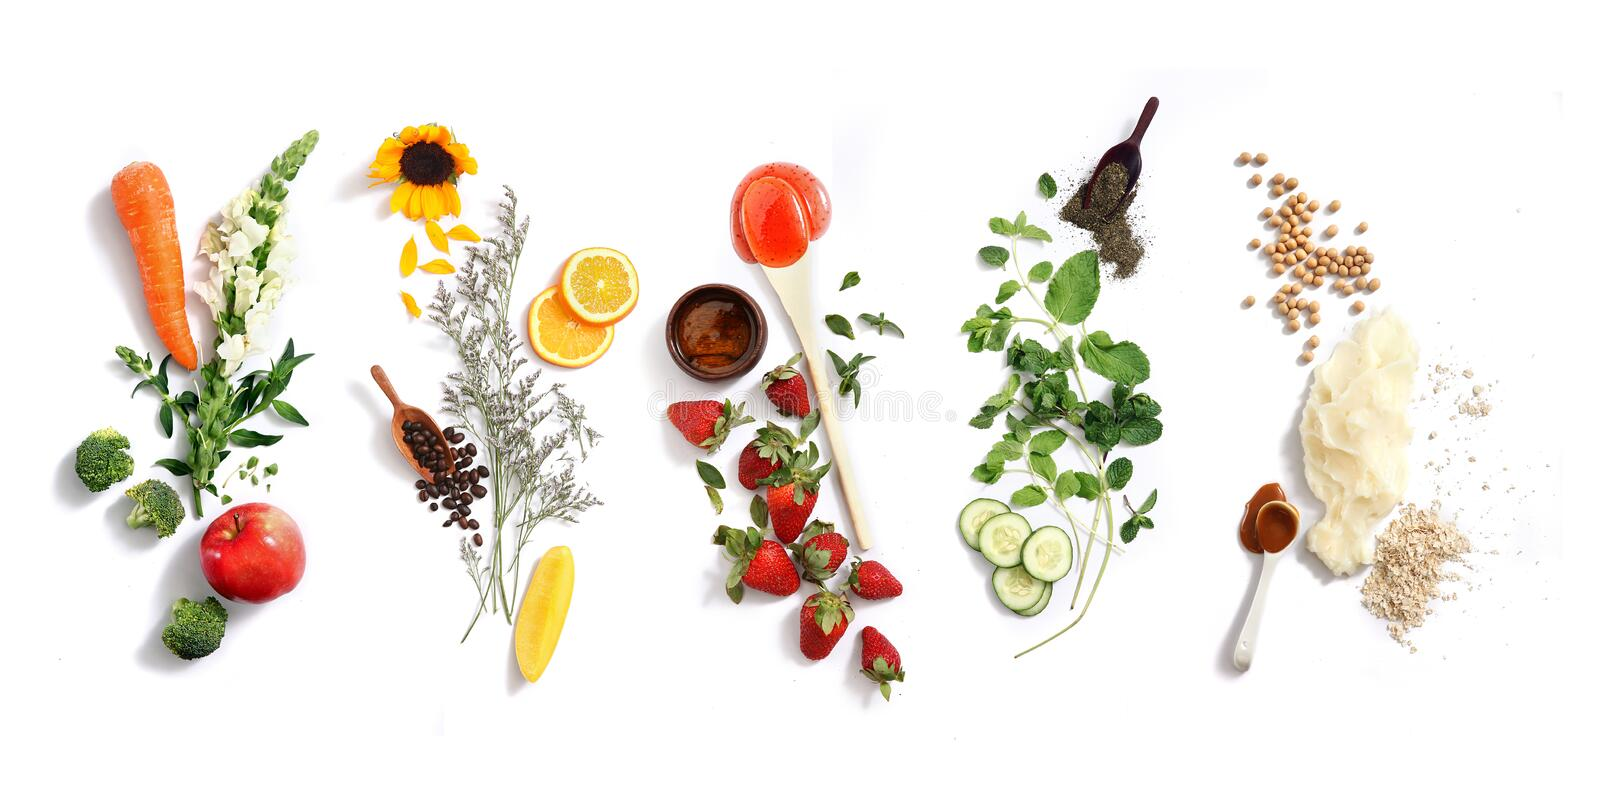 Natural facial ingredients. Natural facial ingrredients on white background royalty free stock images